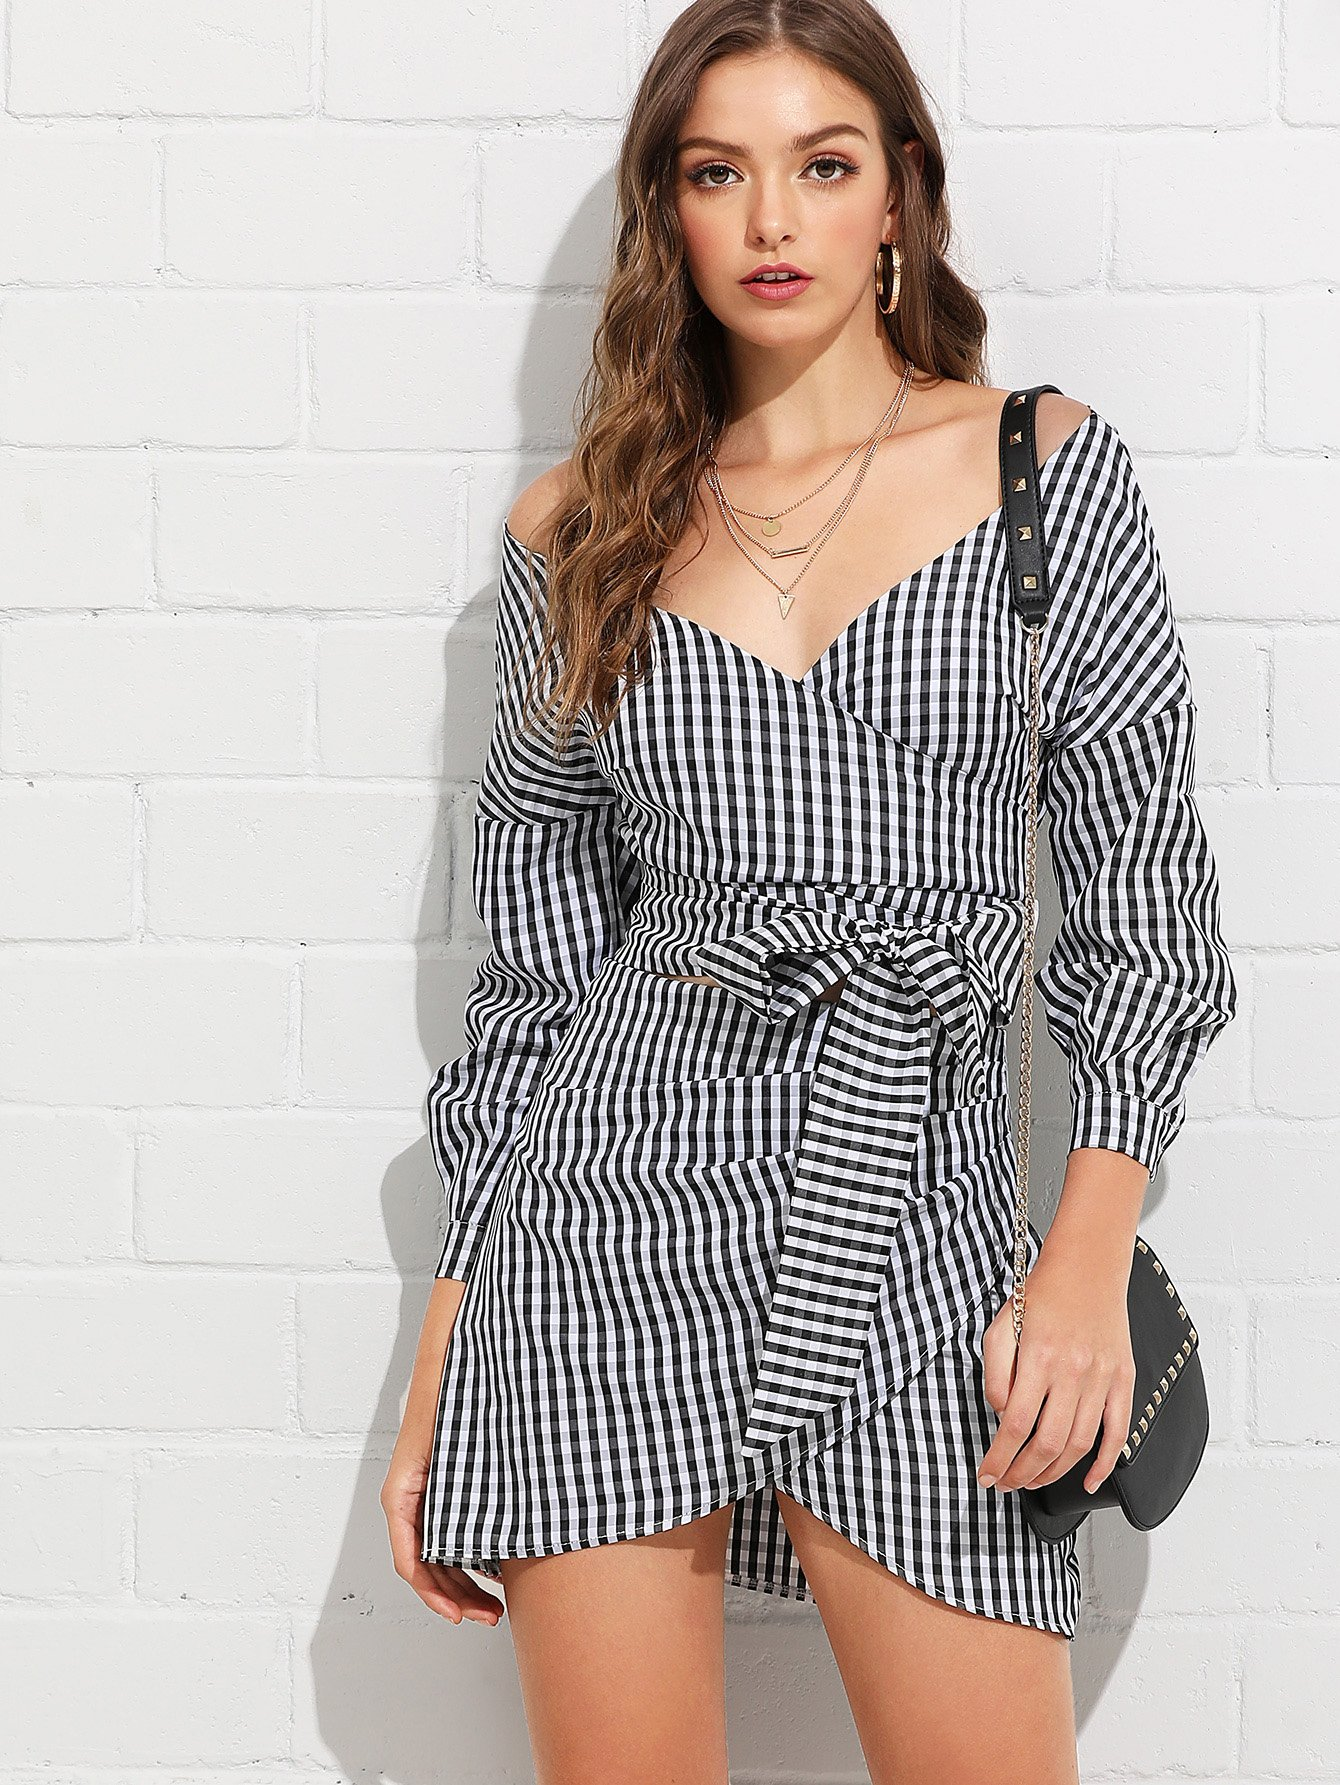 V-Neckline Knot Wrap Plaid Top With Skirt zip up back knot plaid top